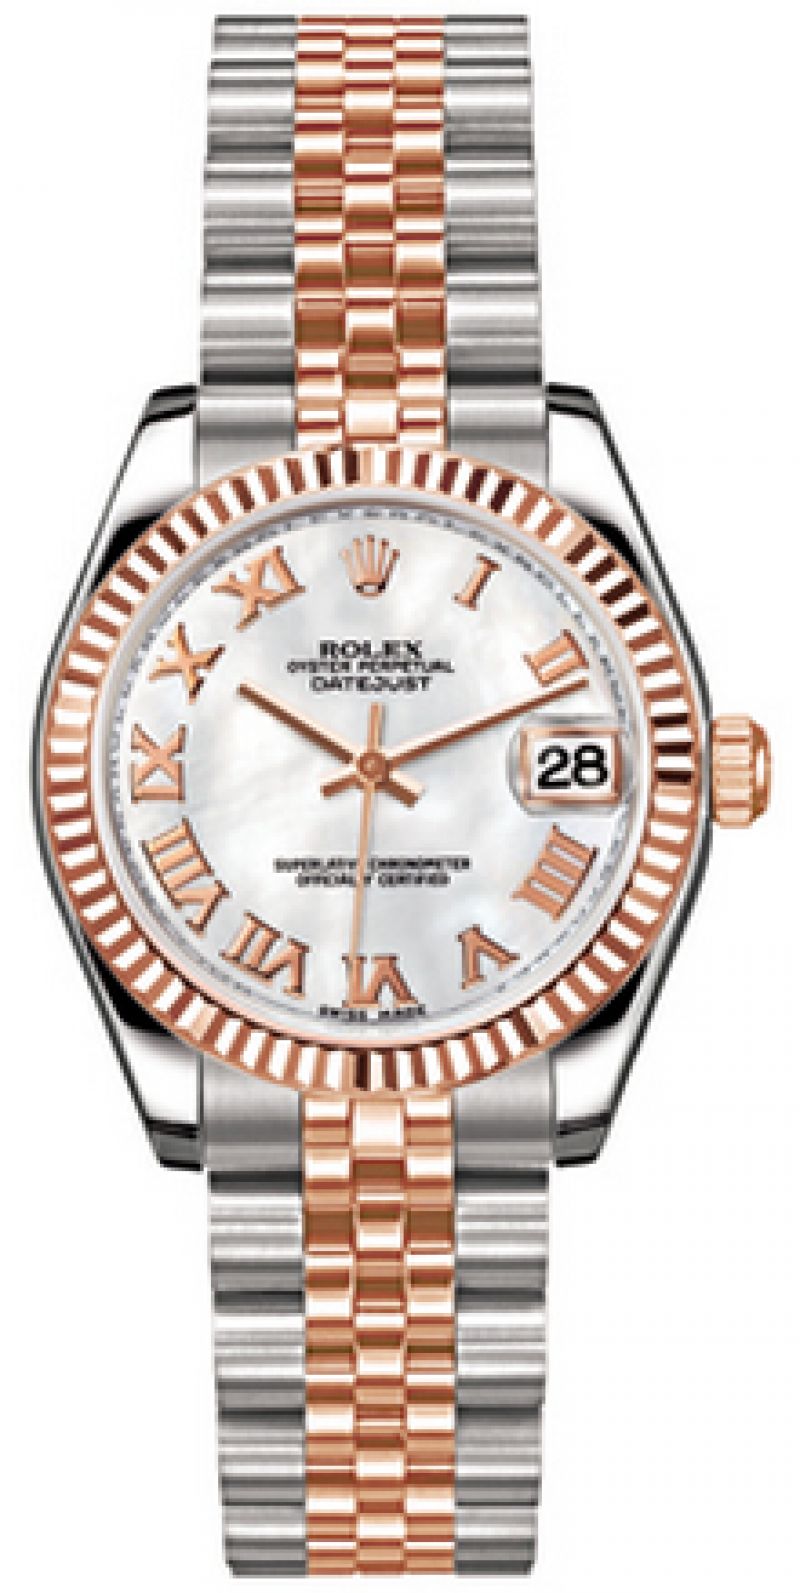 178271 whitemop Rolex Steel and Everose Gold Datejust Ladies